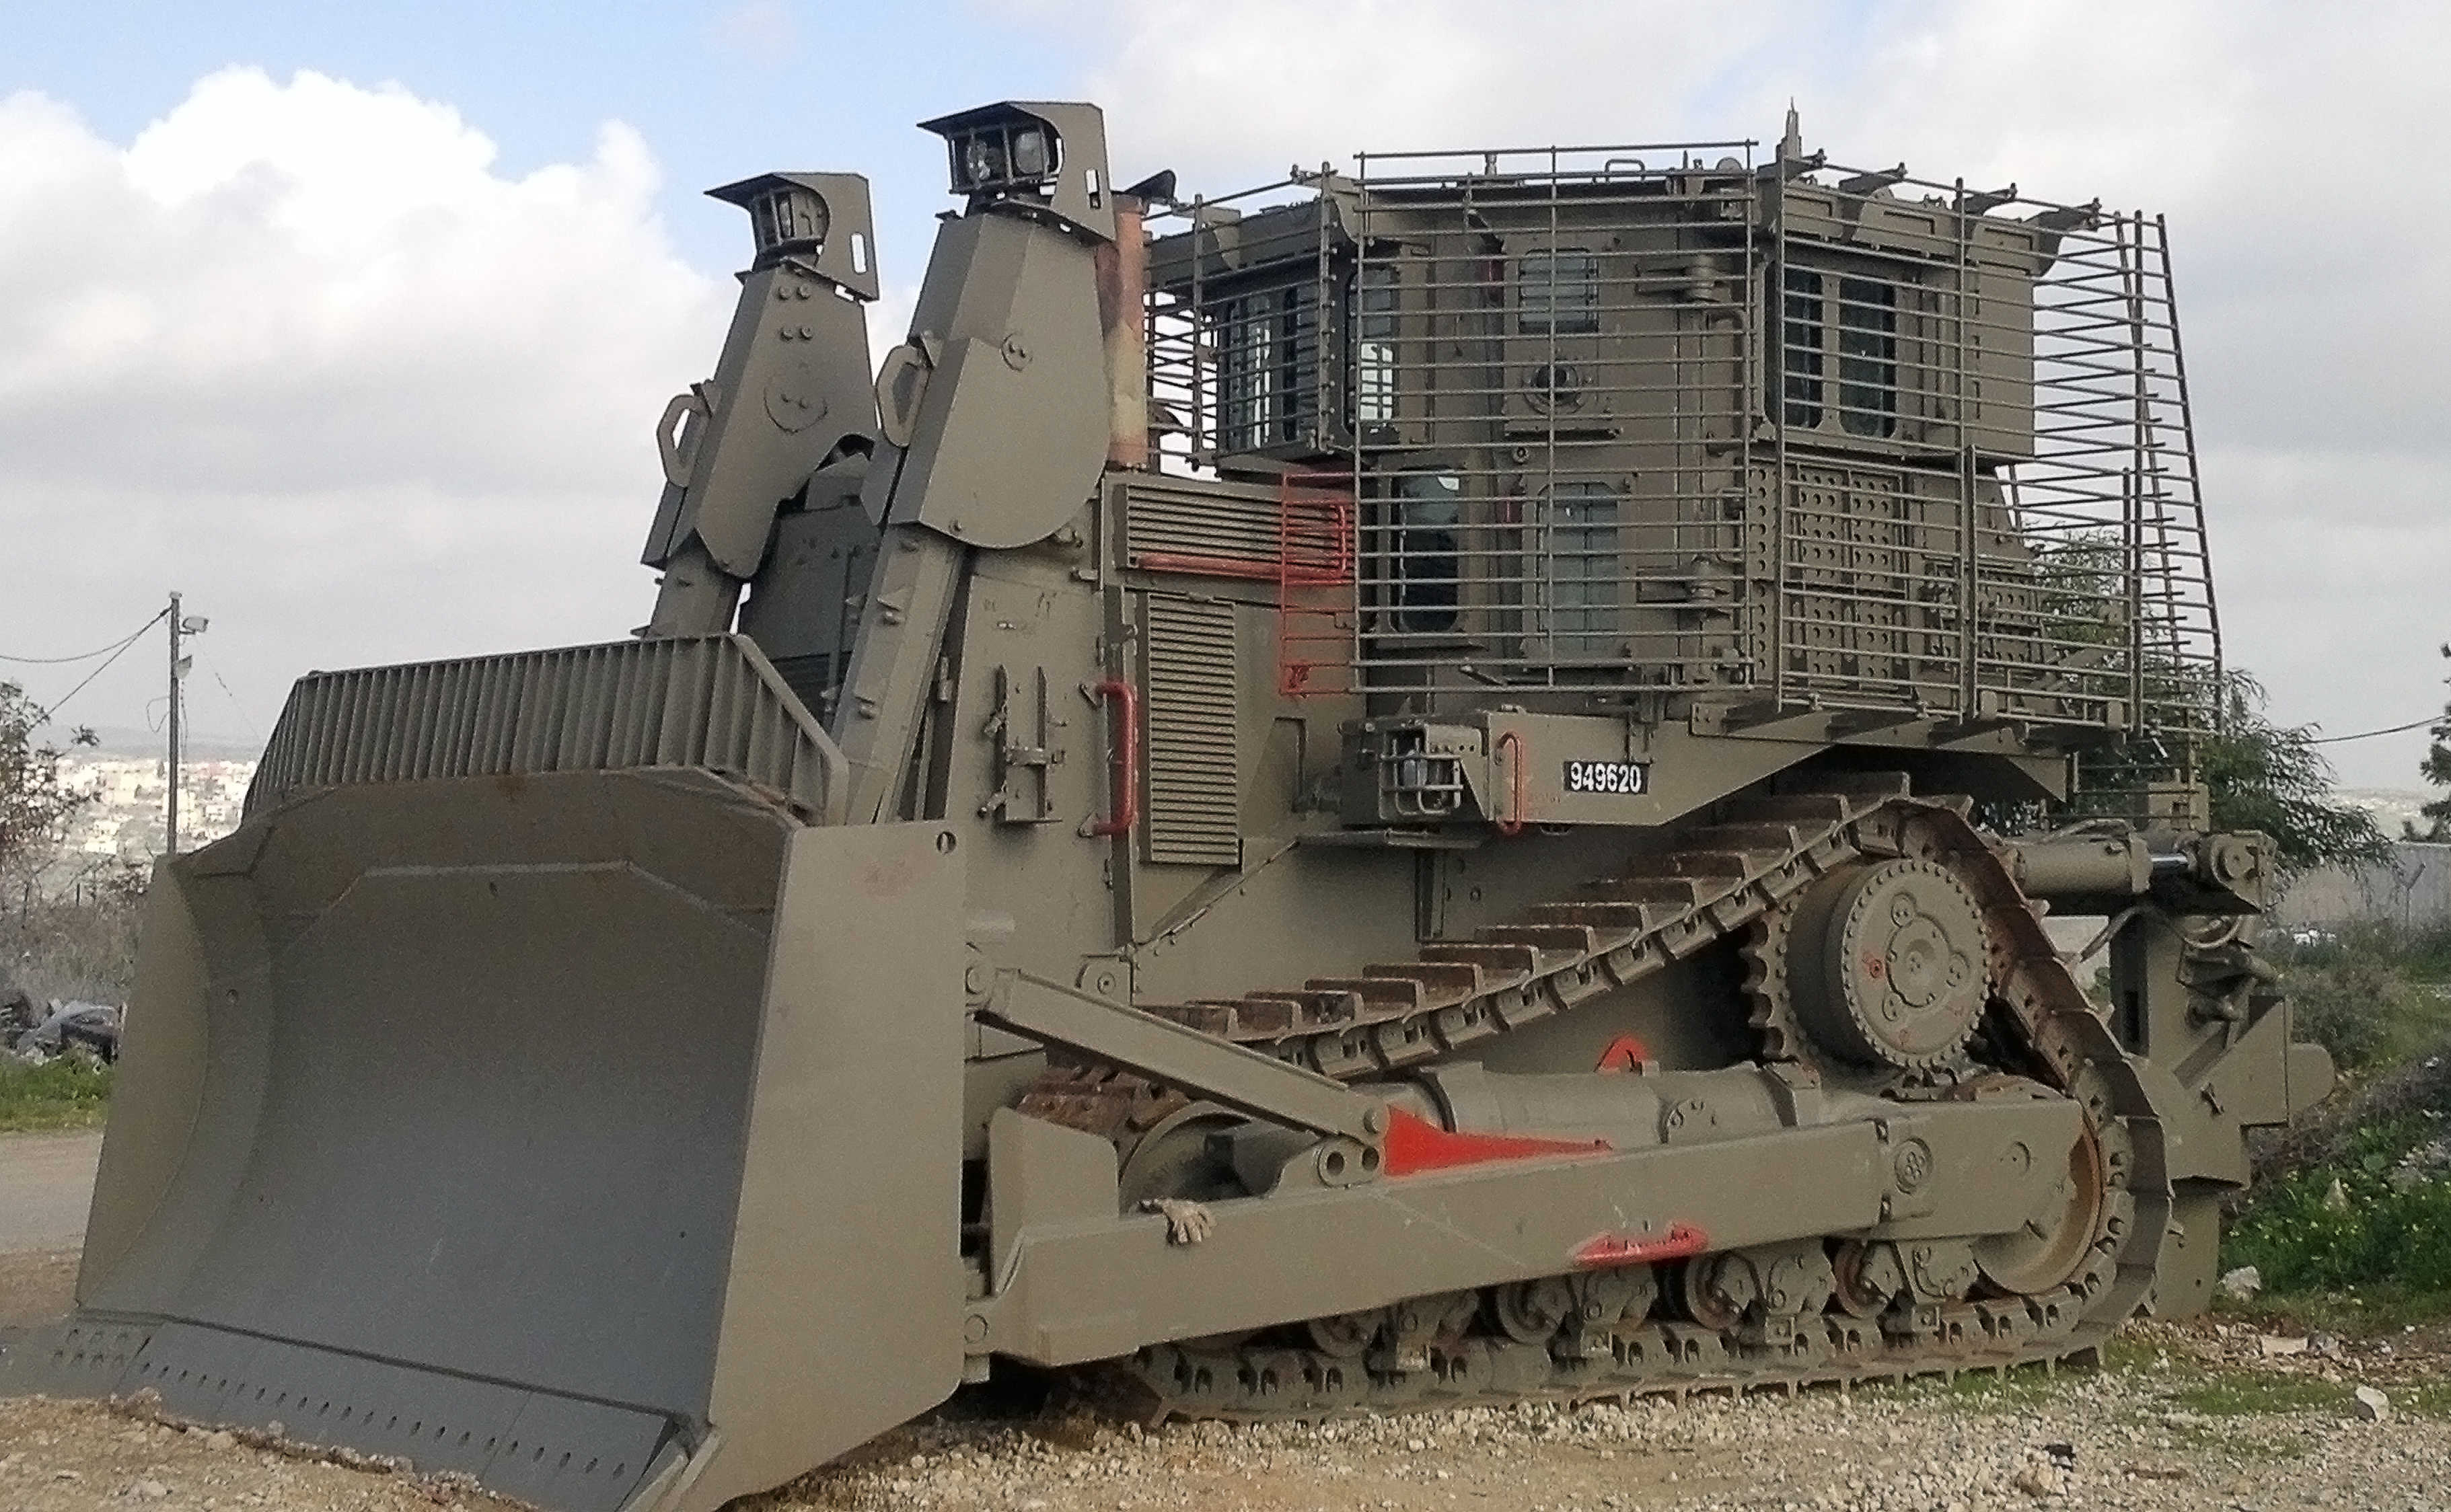 This Israeli D9R Combat Bulldozer is another example of a combat engineering vehicle. It is capable of moving earth and demolishing barriers while under fire.